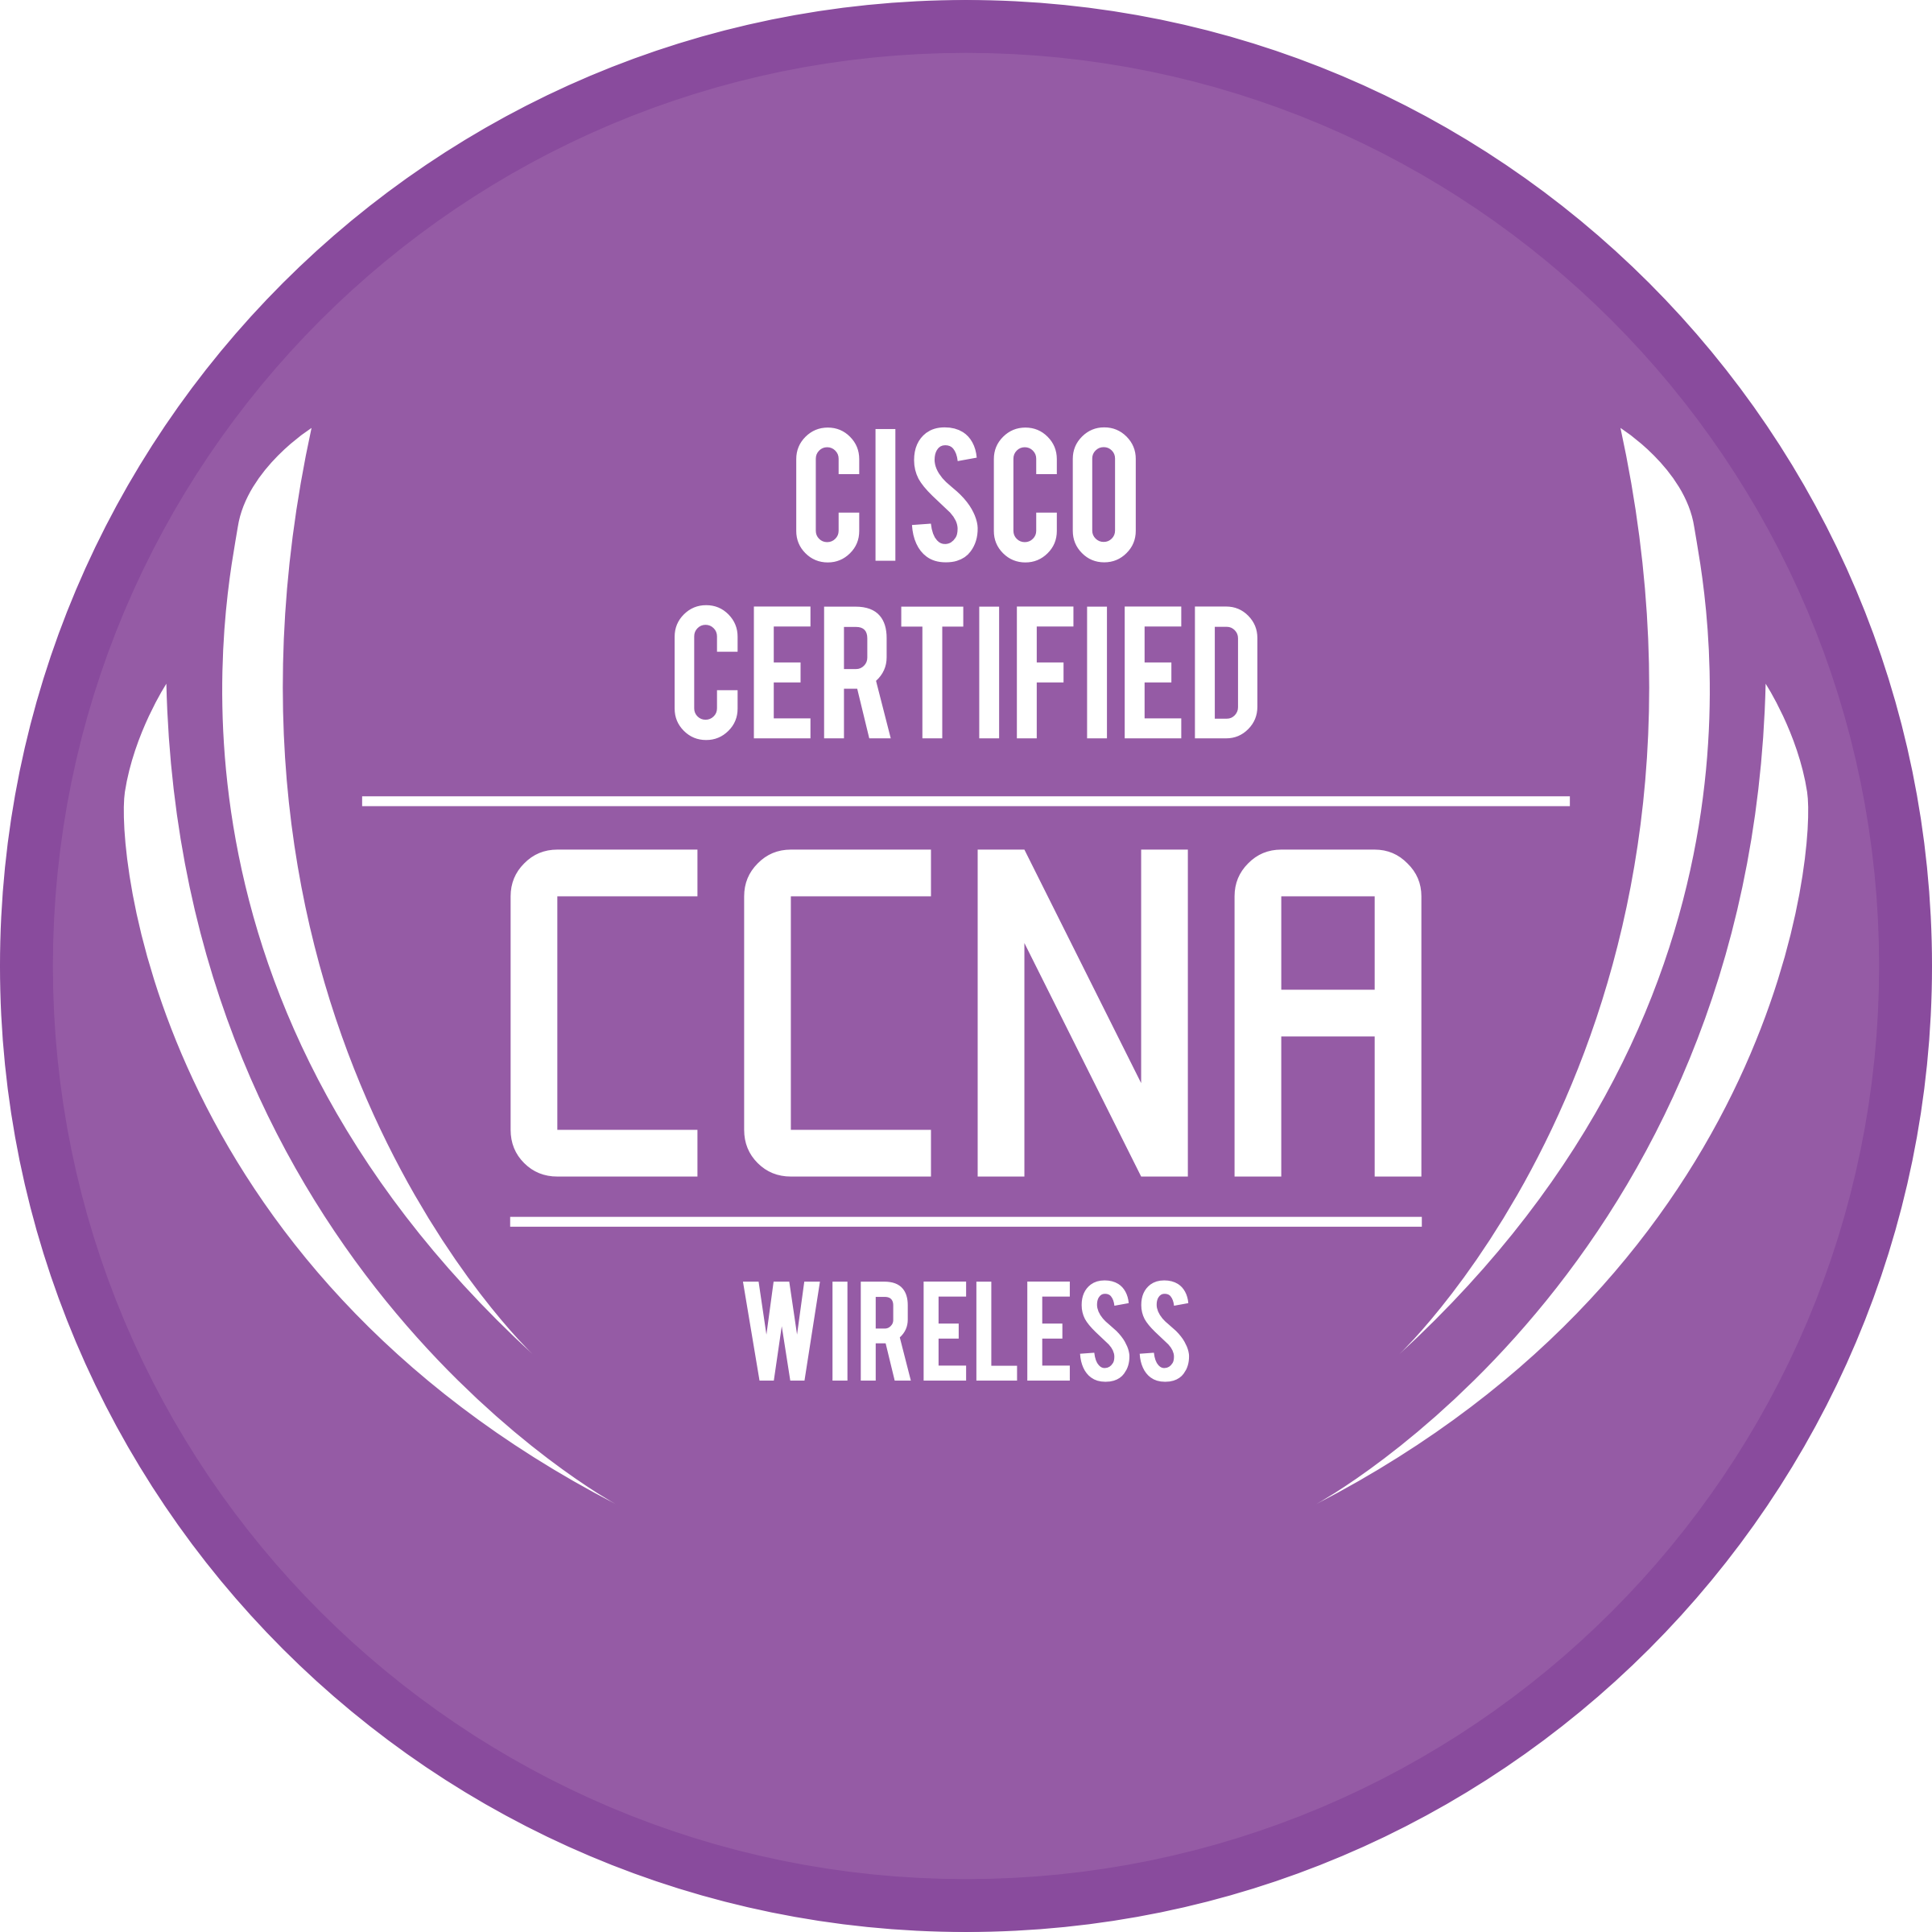 CCNA Wireless by Yudha Agung Pribadi